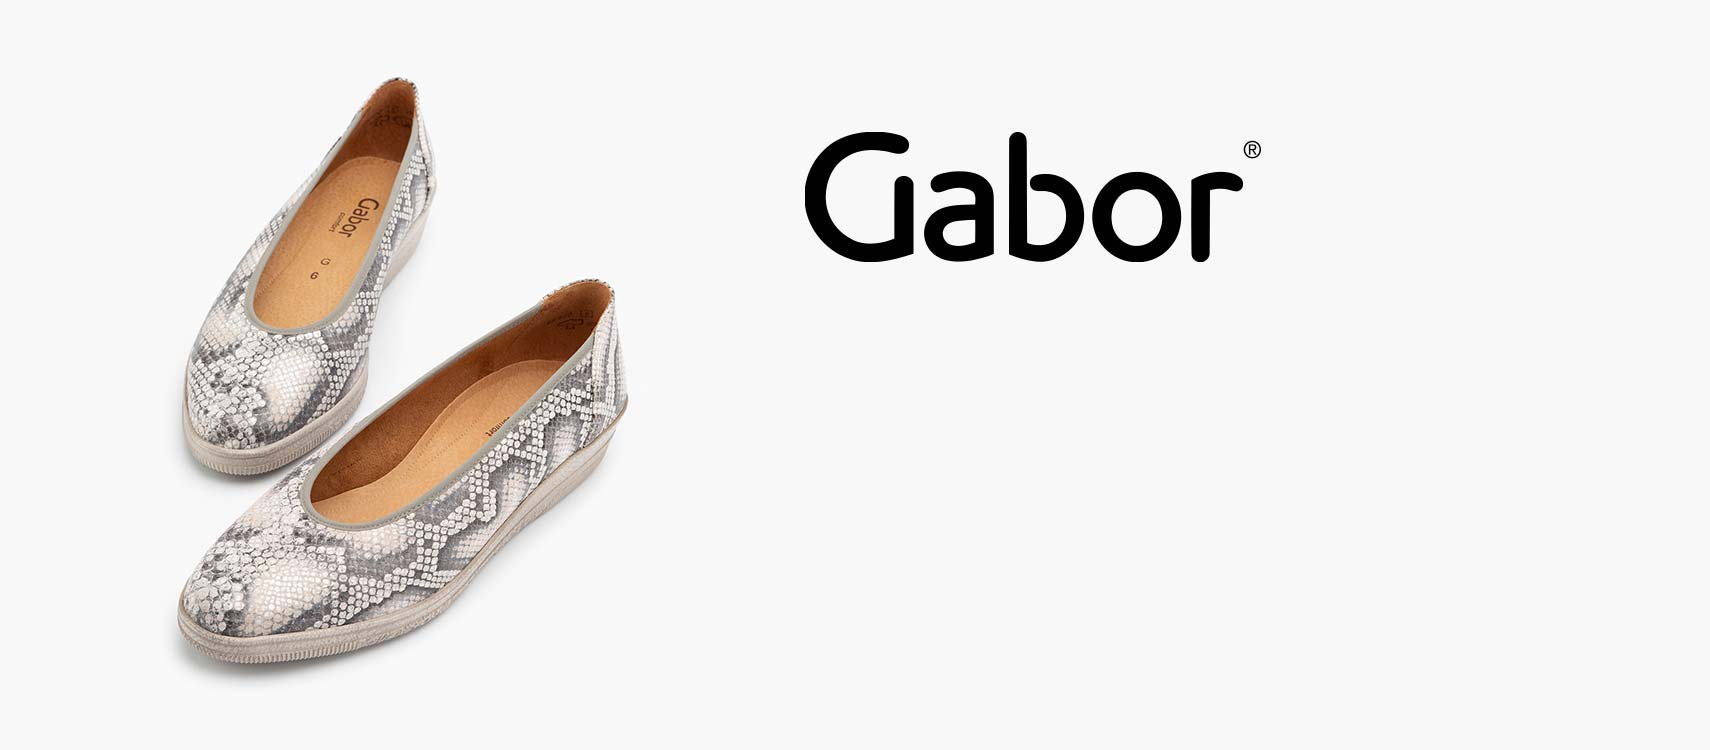 Gabor Shoes - Feel Confident with Our